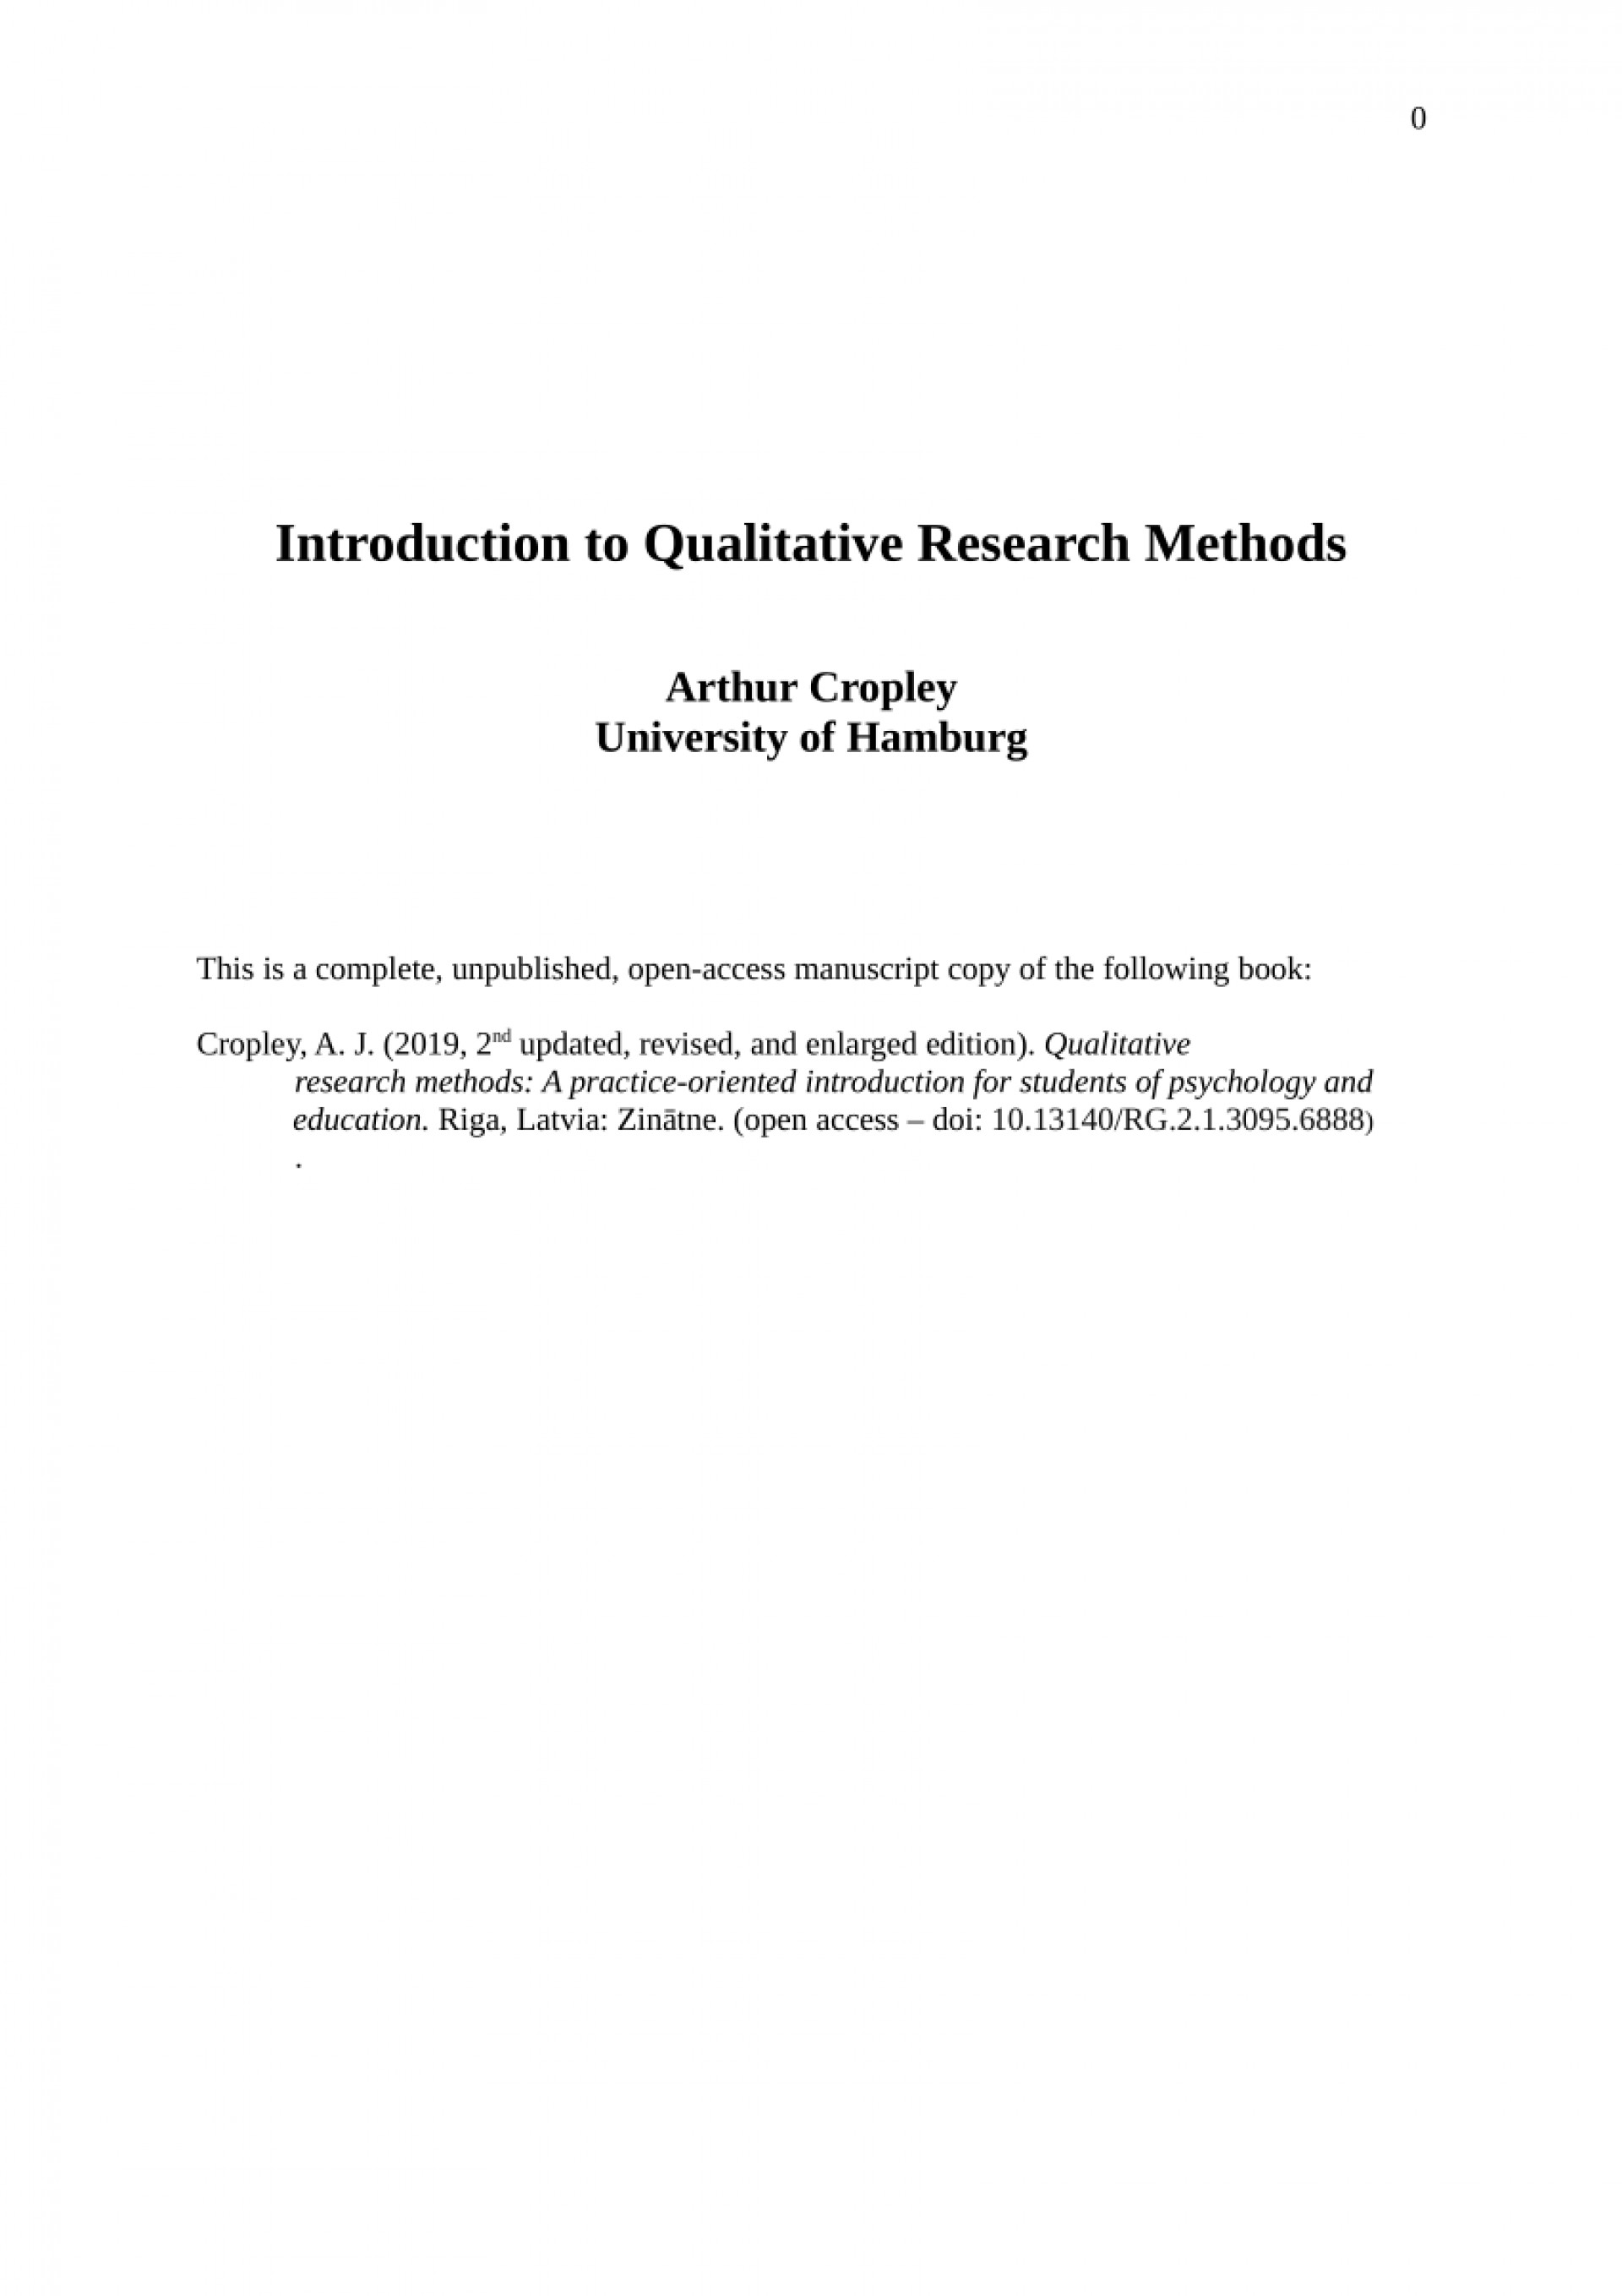 003 Introduction To Qualitative Research Paper Beautiful A How Write An 1920